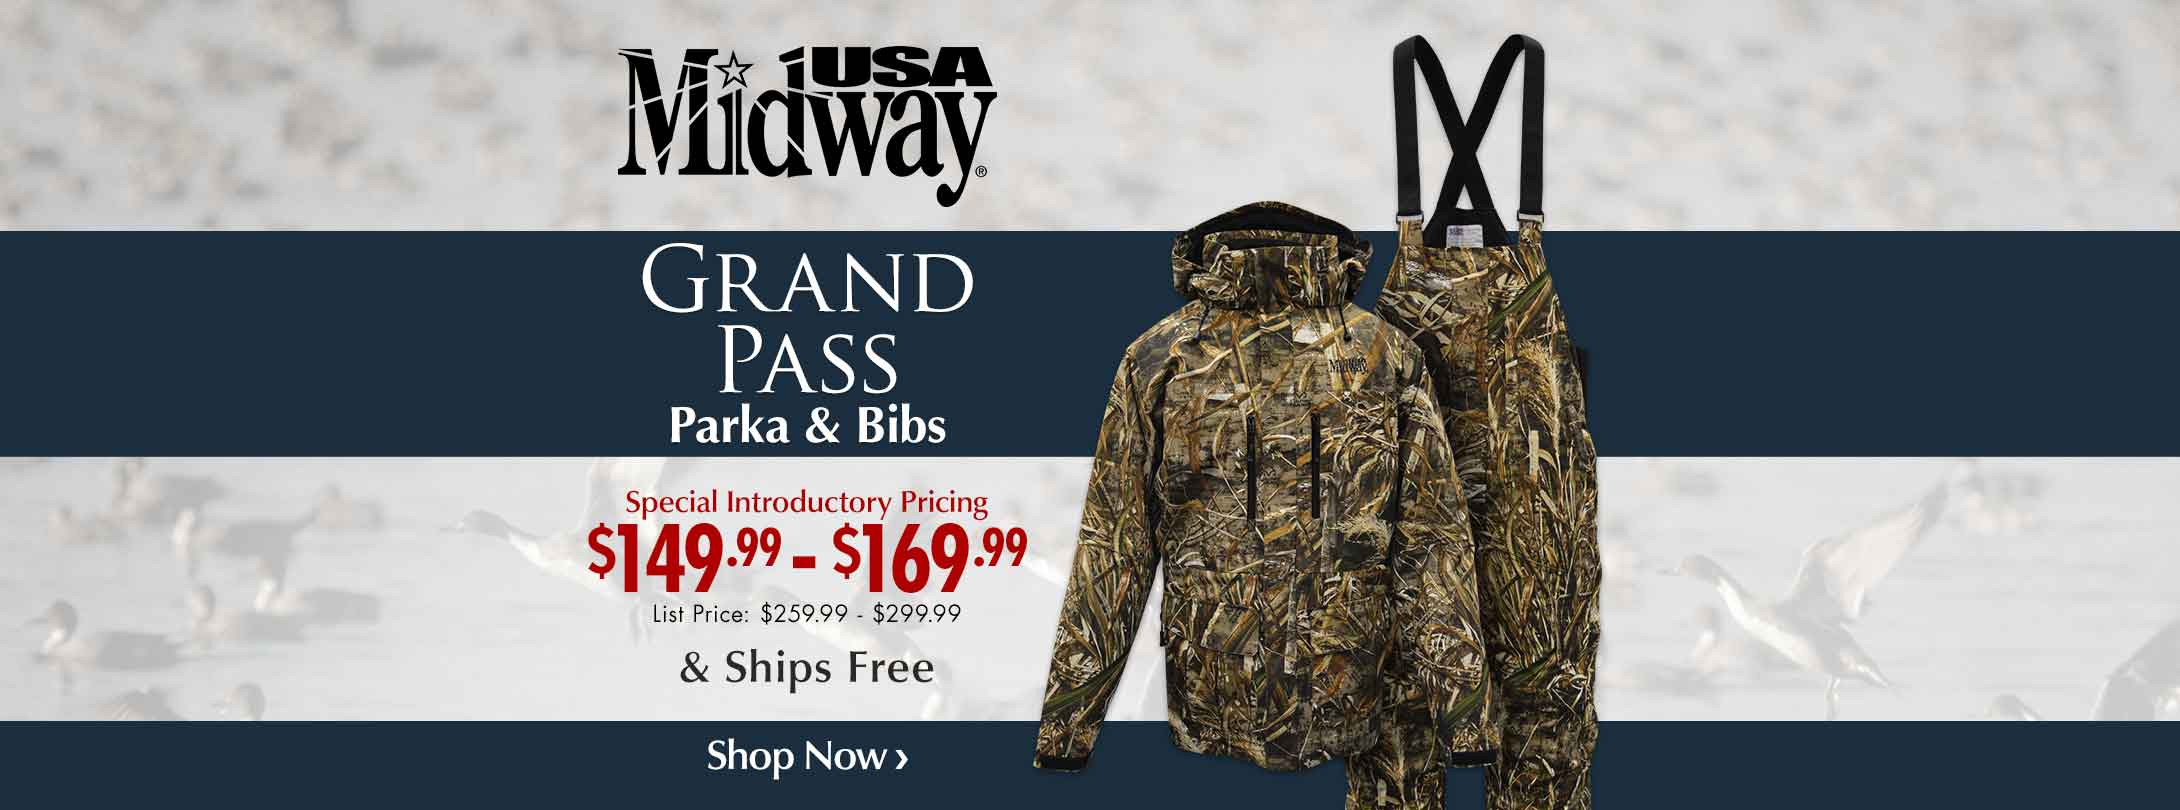 Now Available: MidwayUSA Grand Pass Parka & Bibs